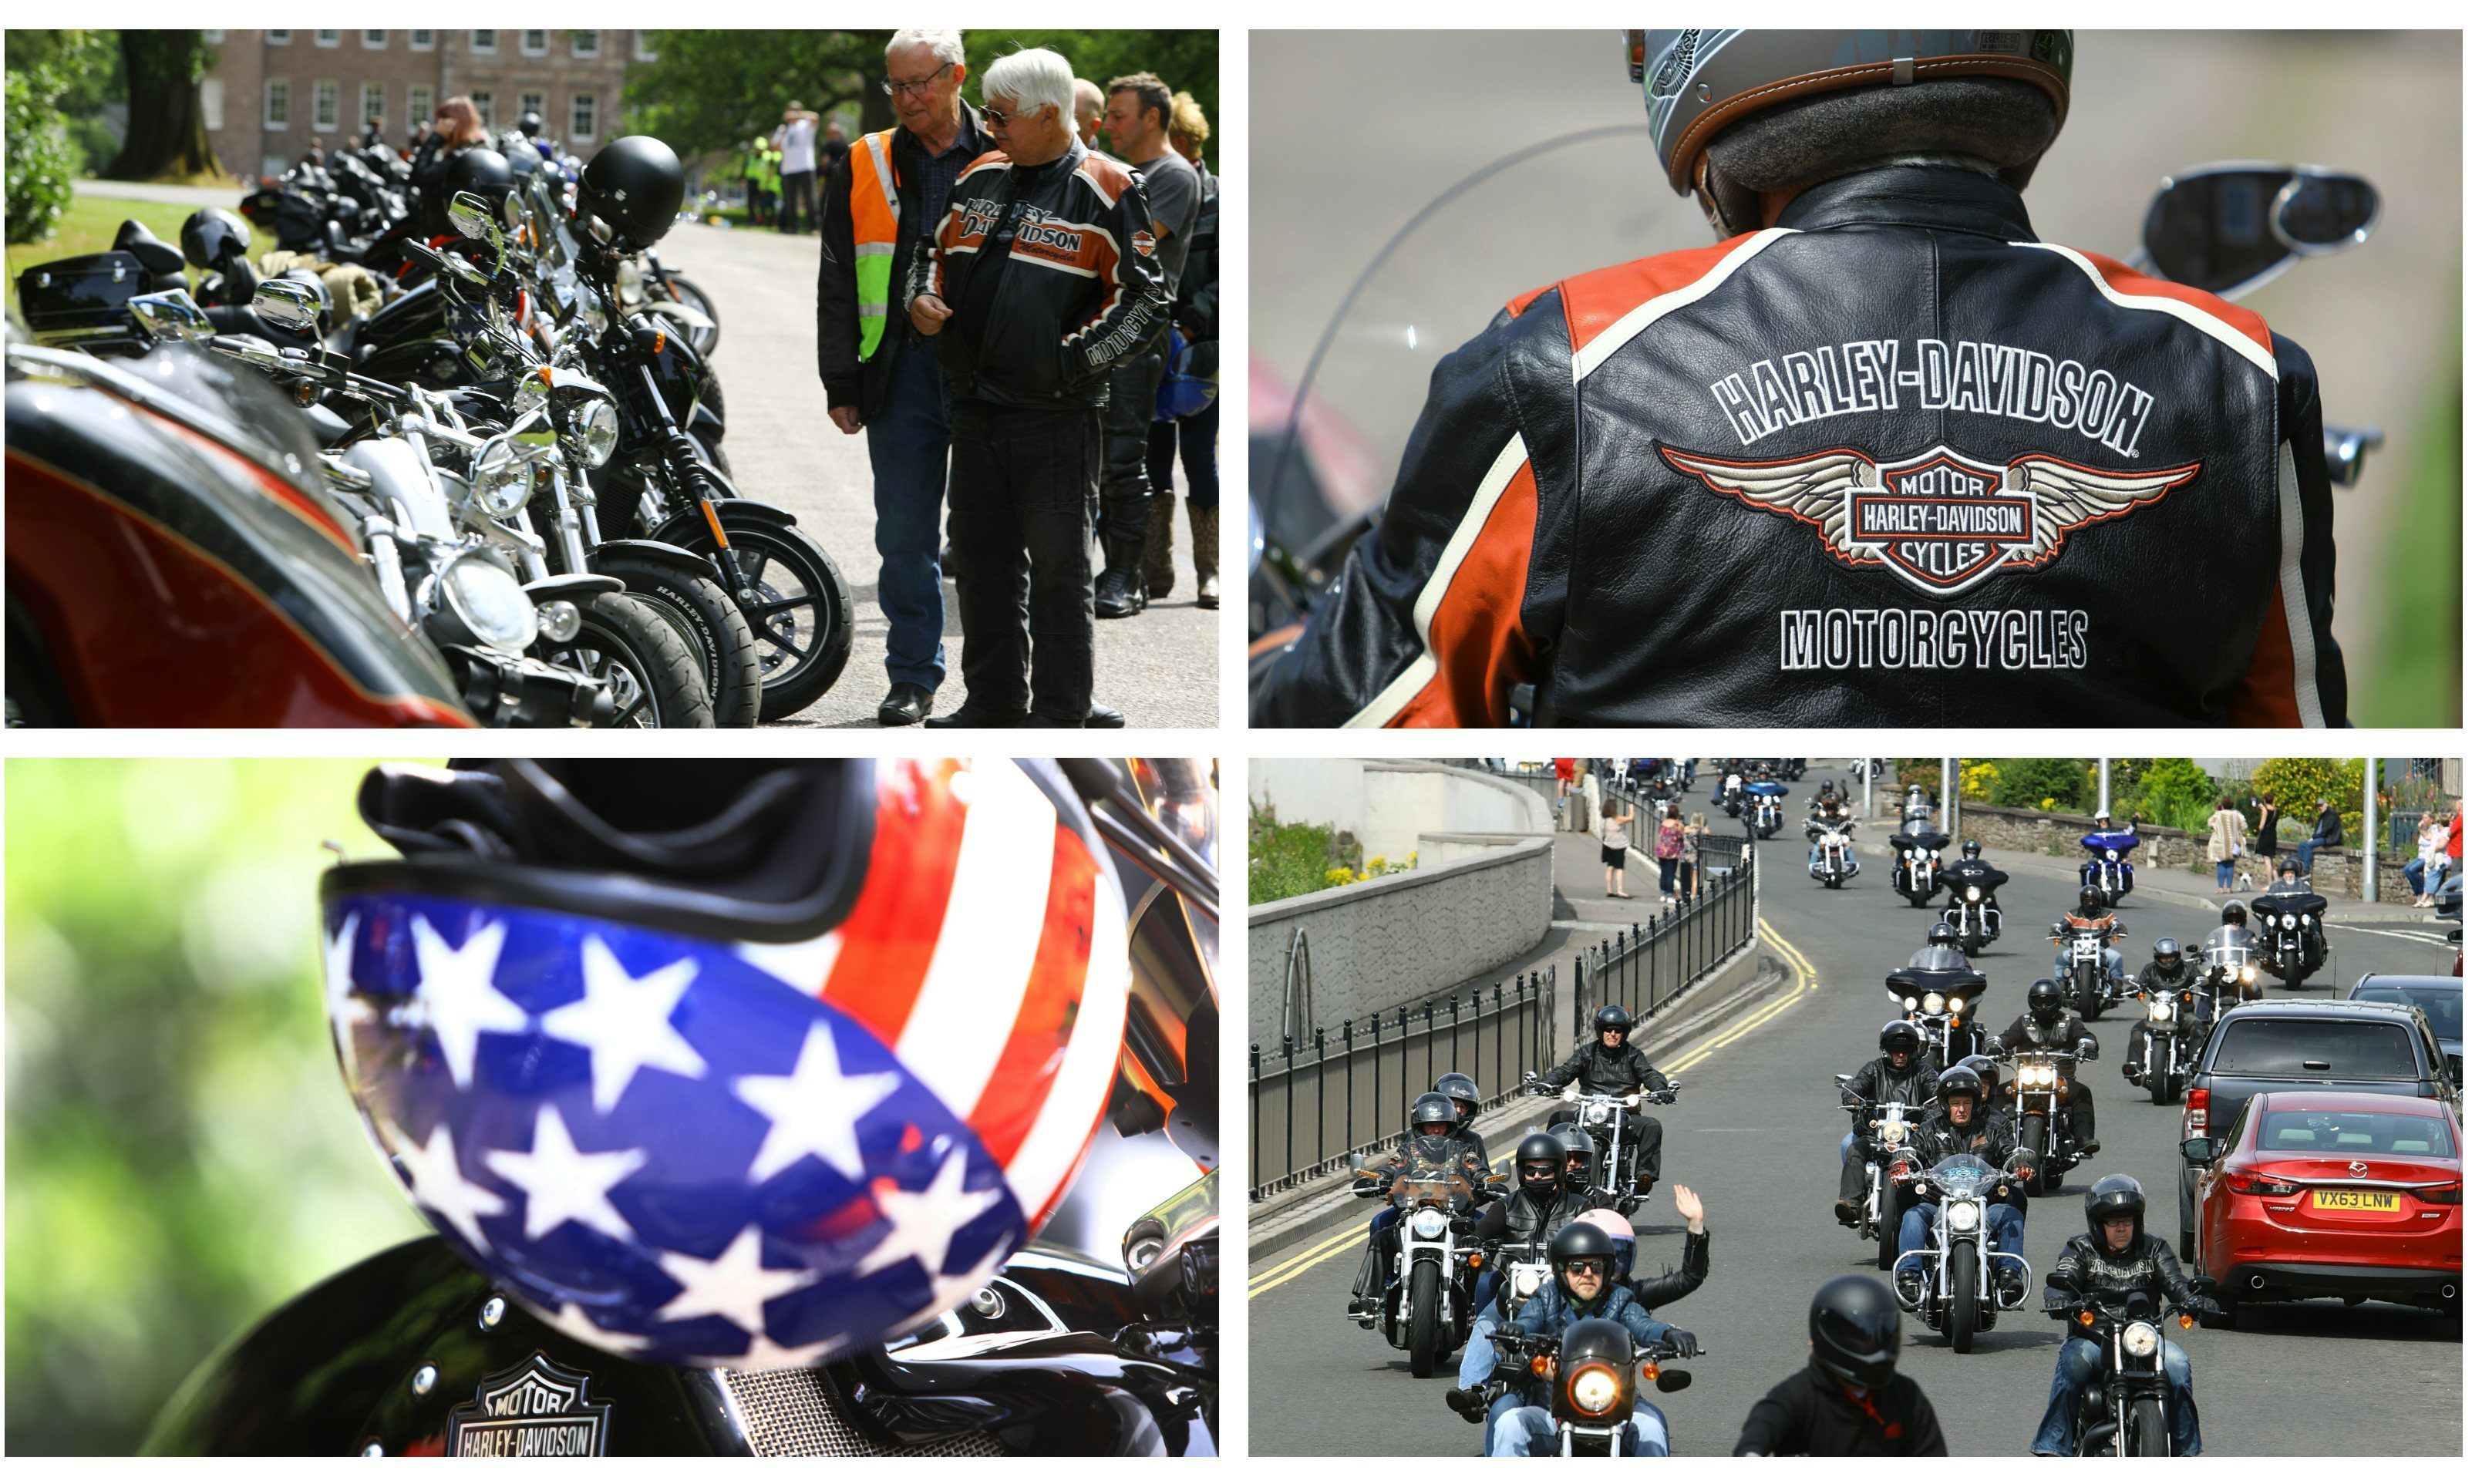 Harley-Davidson in the City Motorcycle Festival.